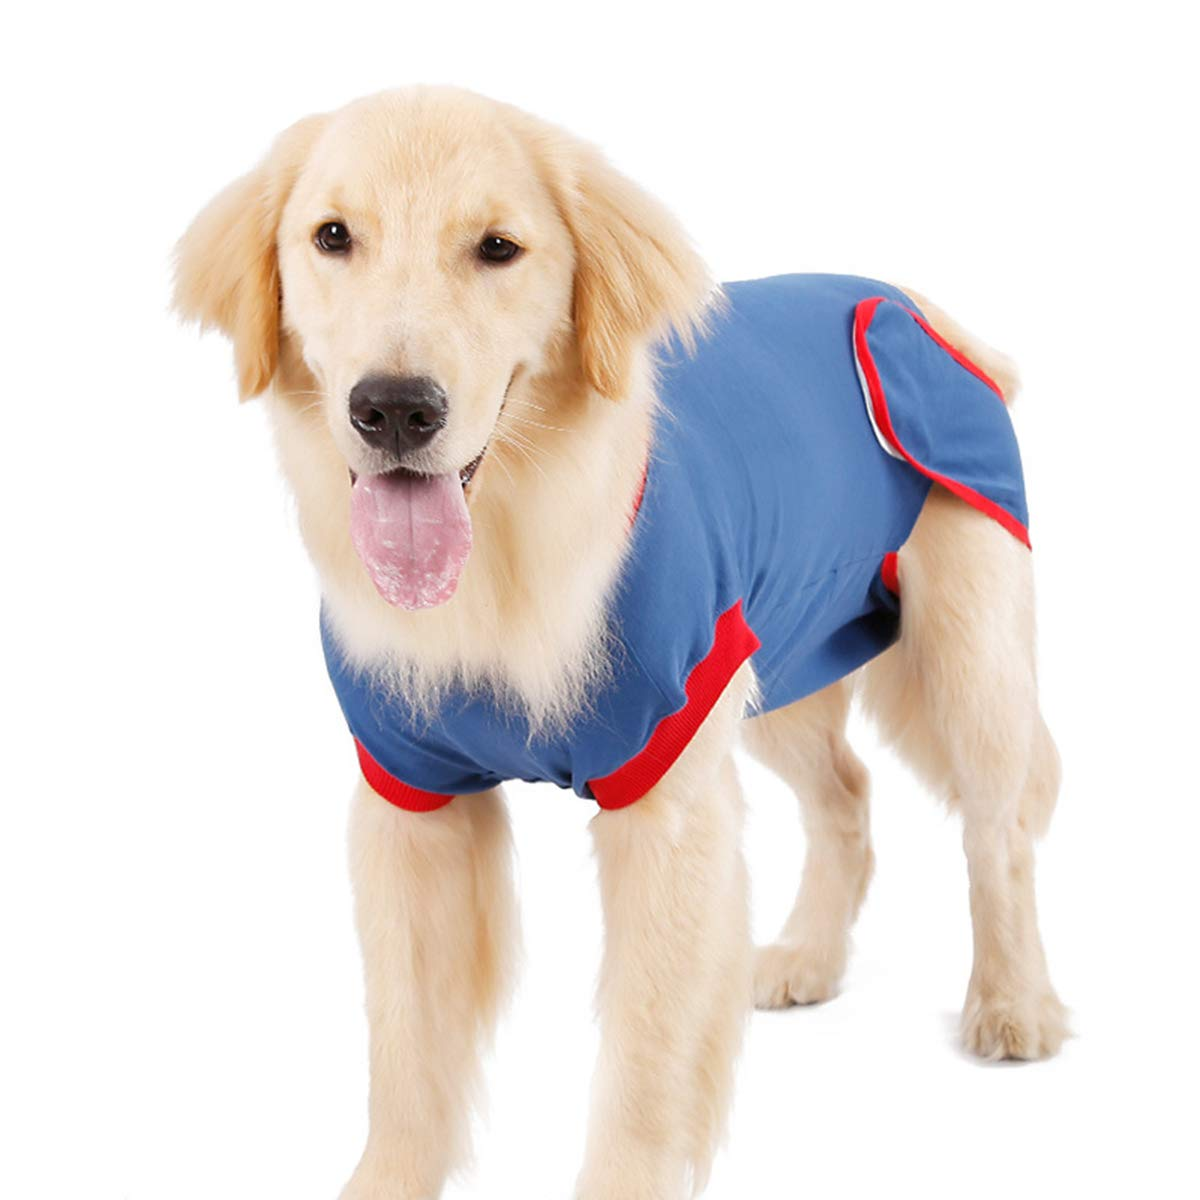 Bite Petyoung Pet Dog Recovery Suit Cat Abdominal Wound Protector Pet Cotton Recovery Suit After Surgery Wear for Prevent Licking